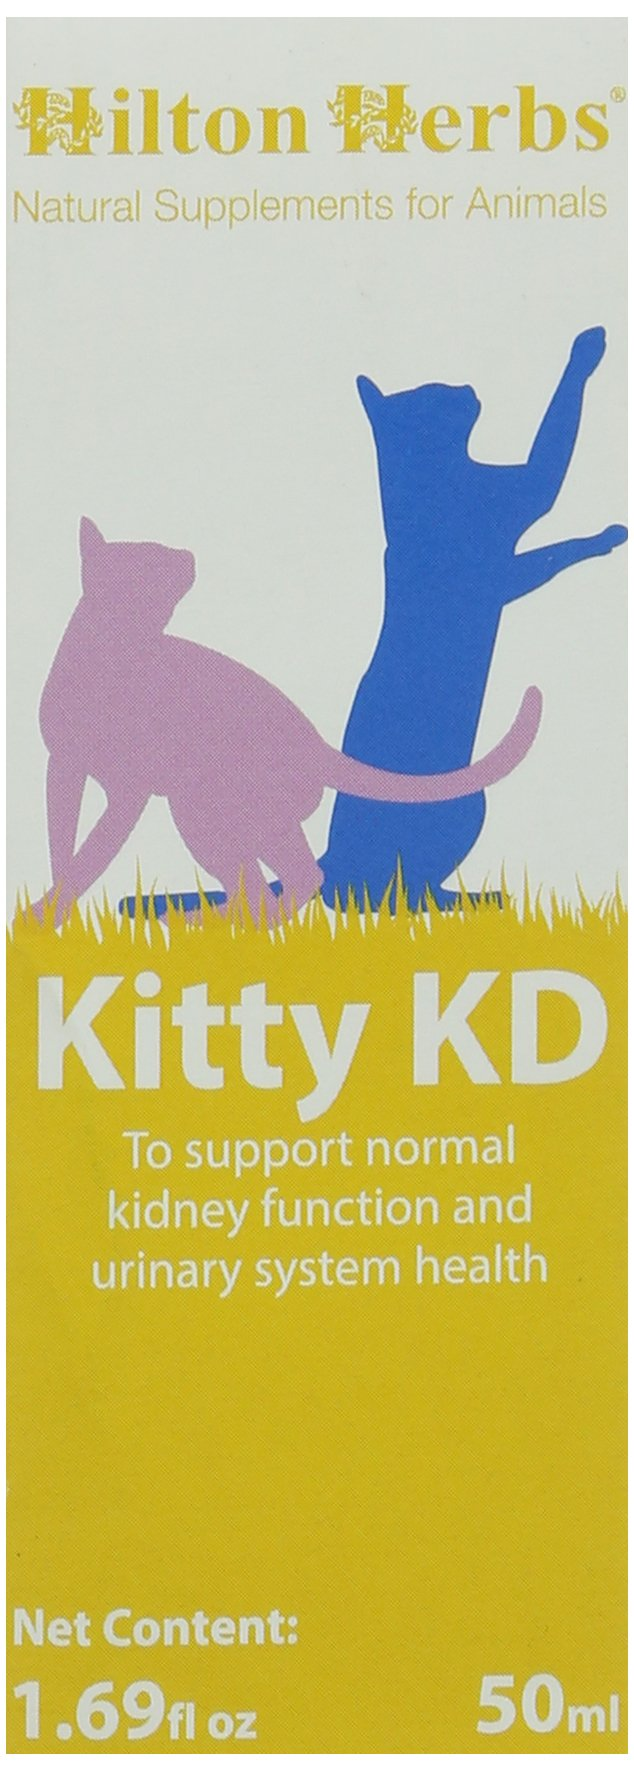 Hilton Herbs Kitty KD Herbal Supplement for Optimum Renal Function in Cats, 1.69 fl oz ( 50 ml ) Bottle by Hilton Herbs